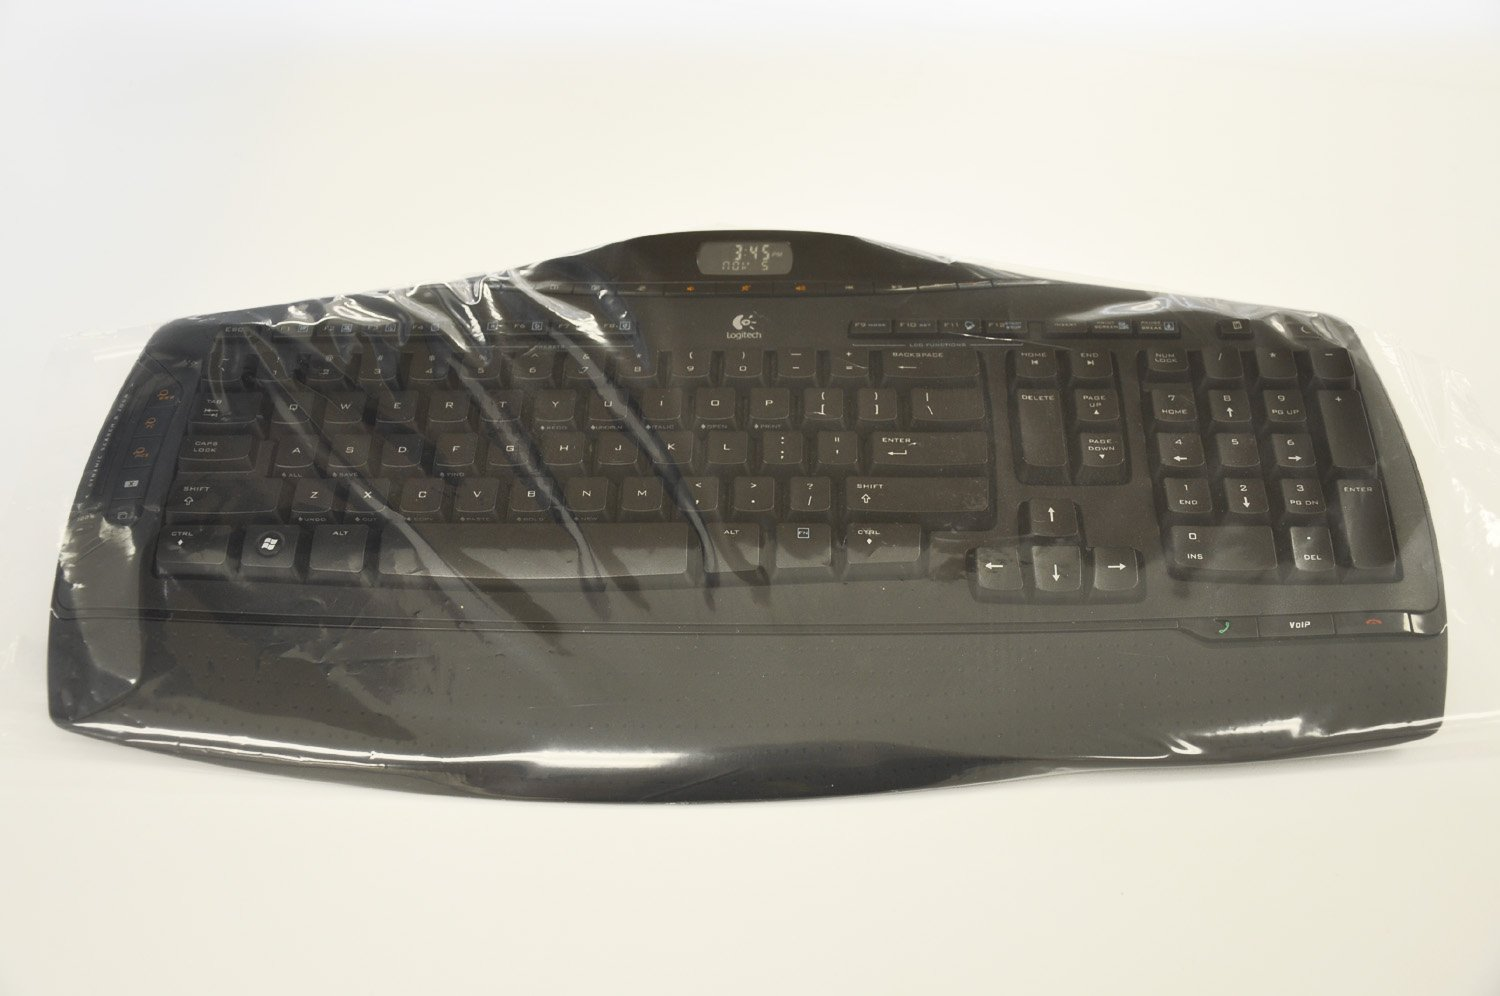 Preferred Medical Products, KC-2418 W/T, 24'' x 18'' Sterile Keyboard Cover with Tape, Pack of 50